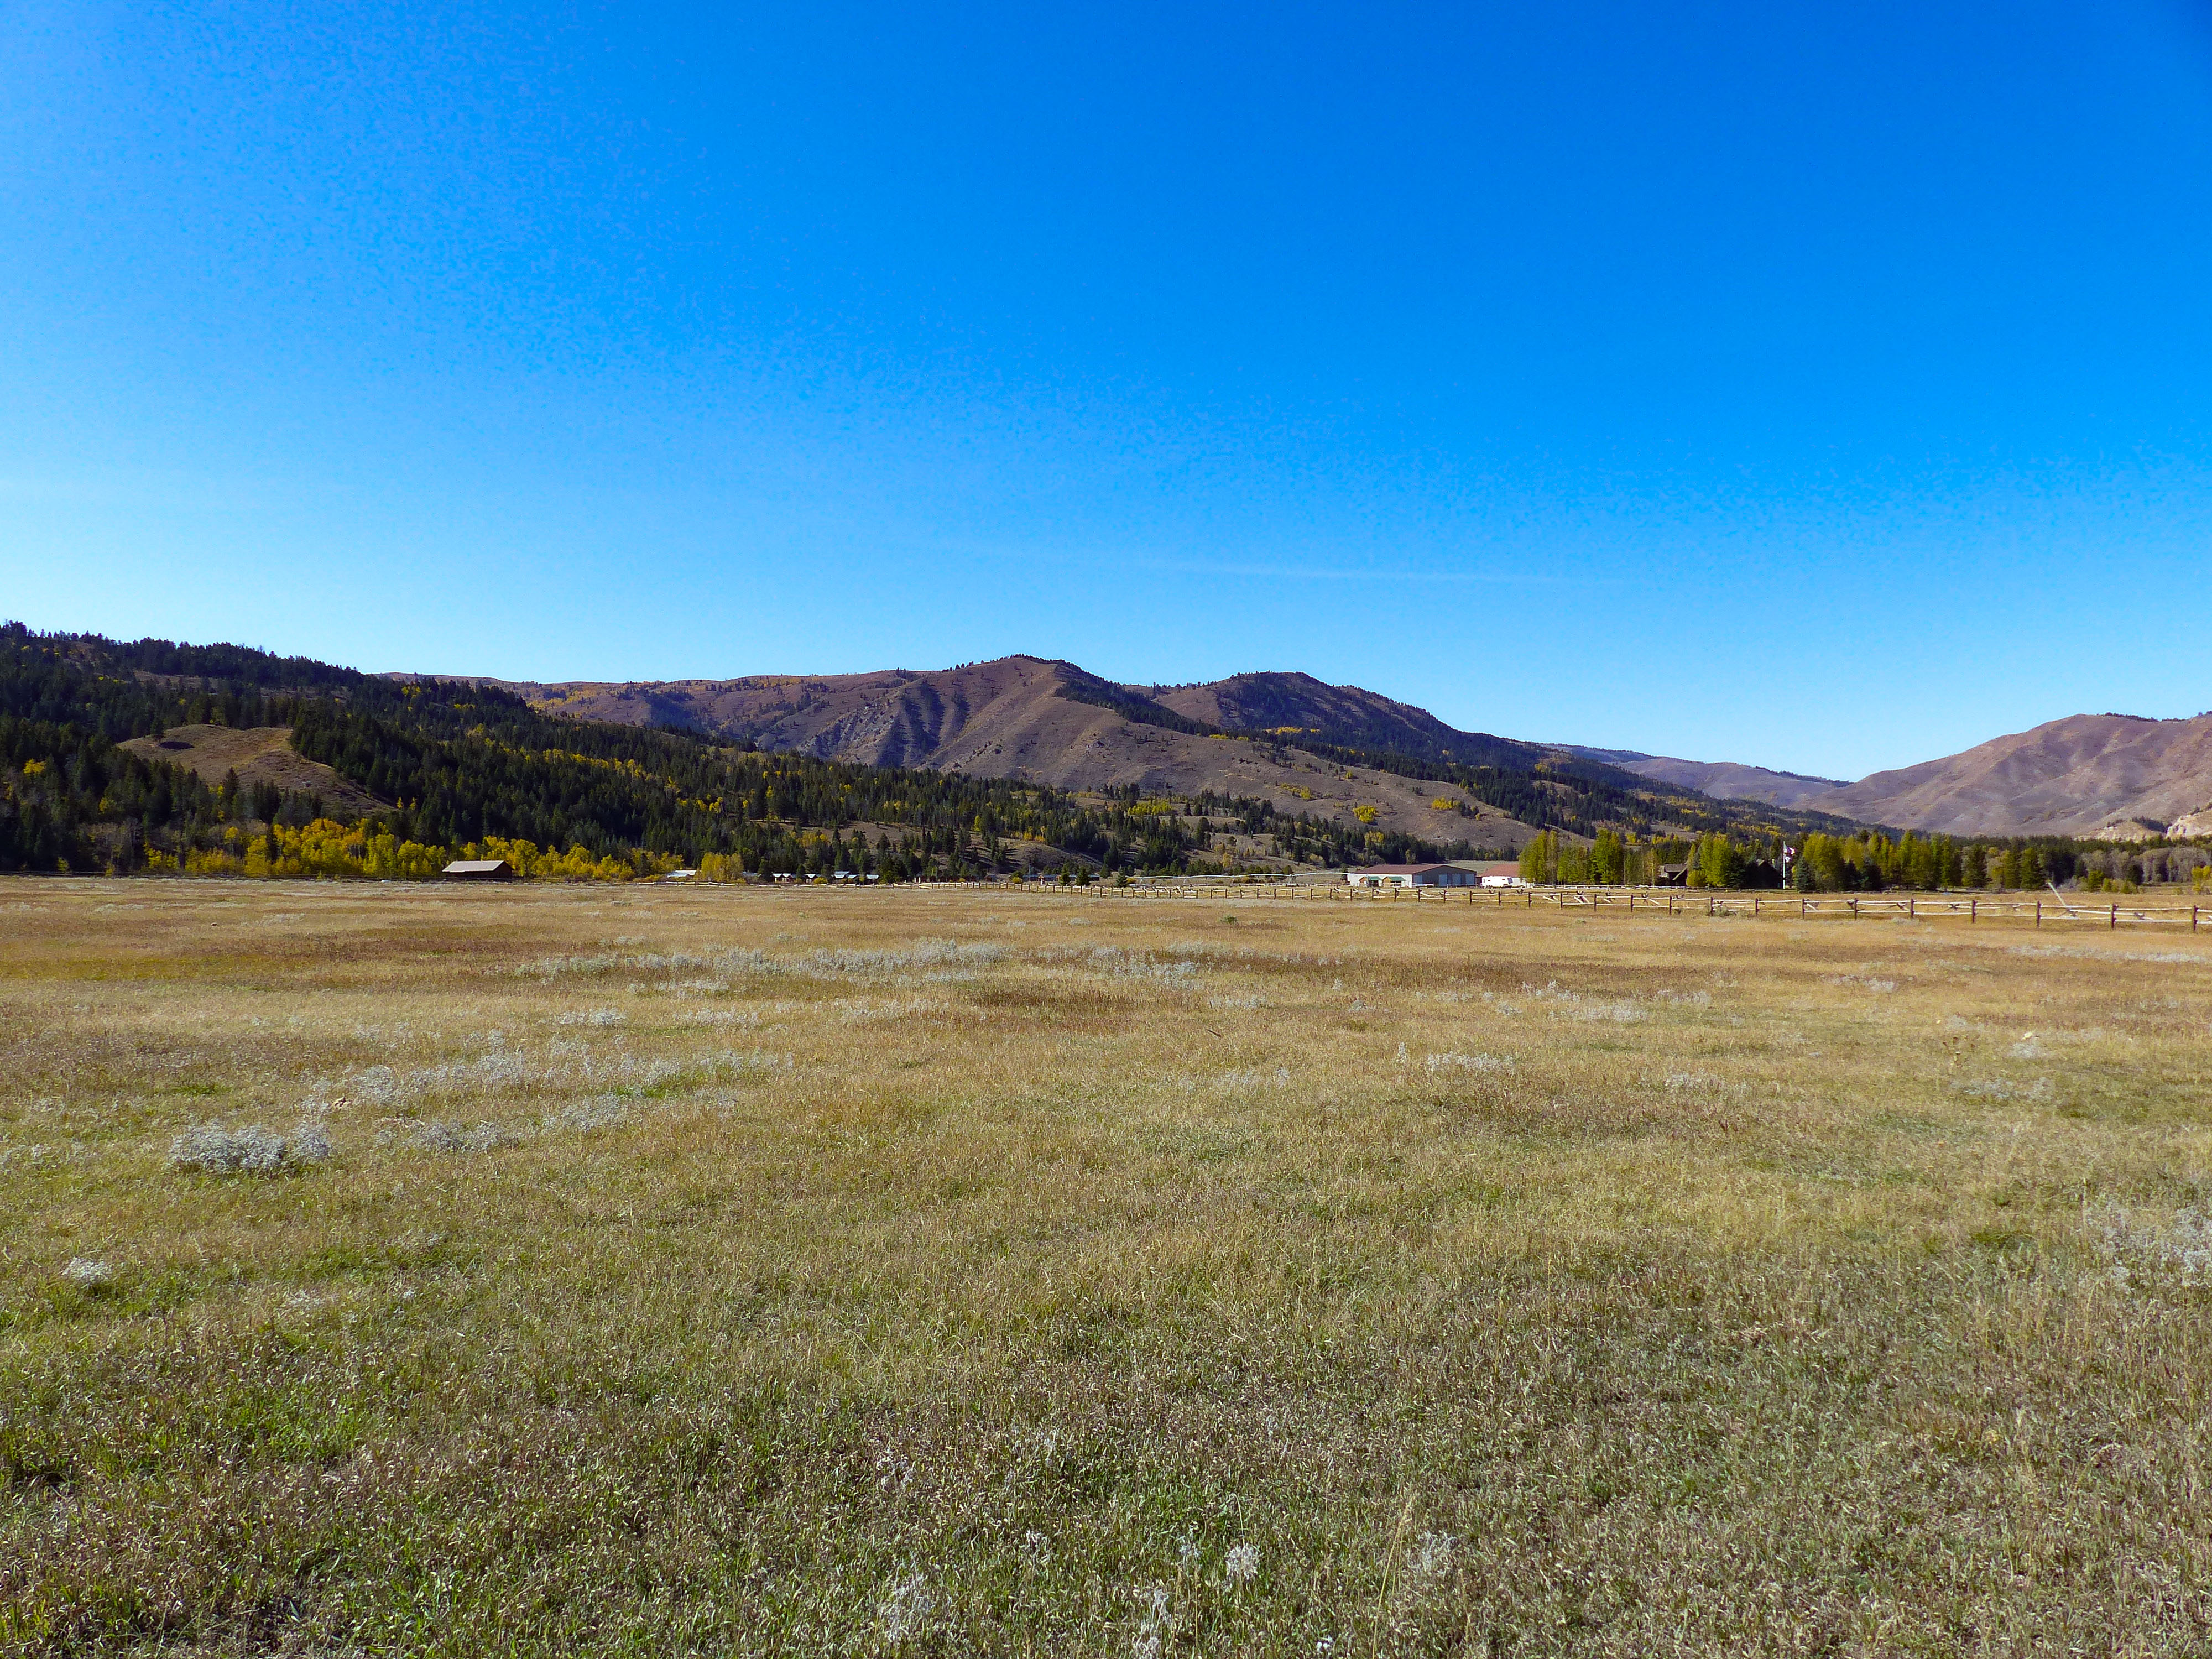 14.73 acres view to NW